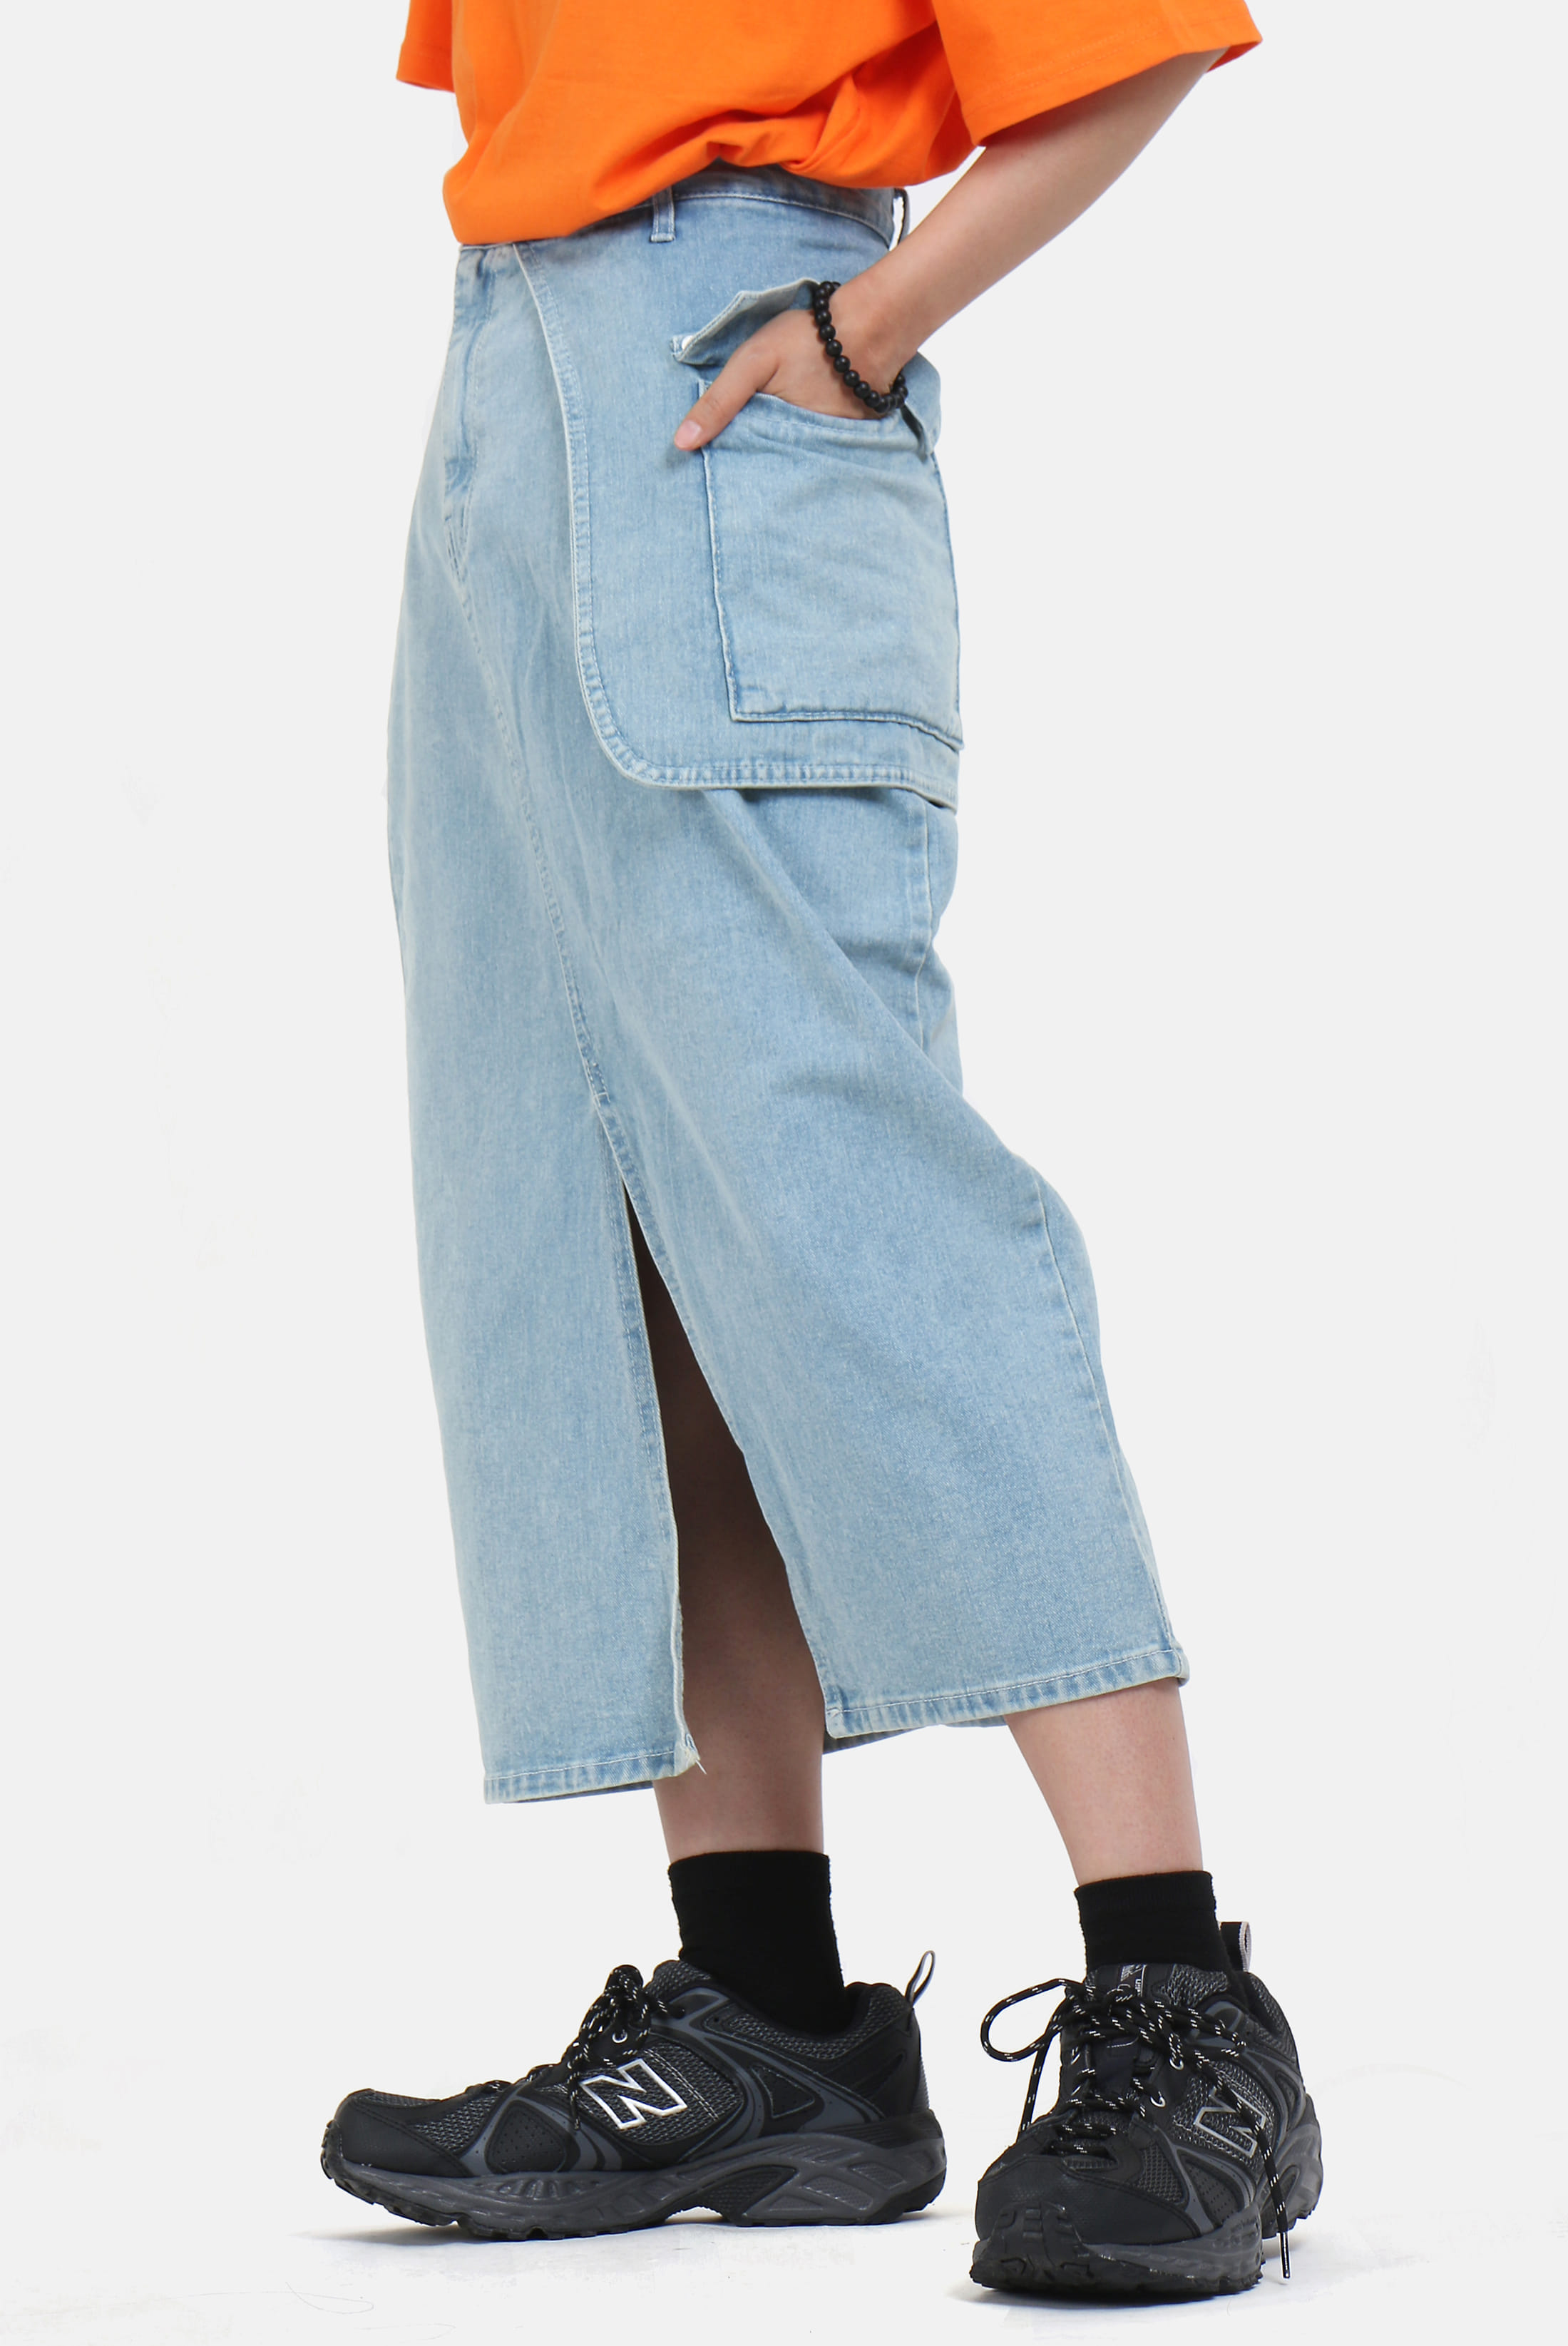 (W) Waist_Poket Long Skirt [Denim_Version]